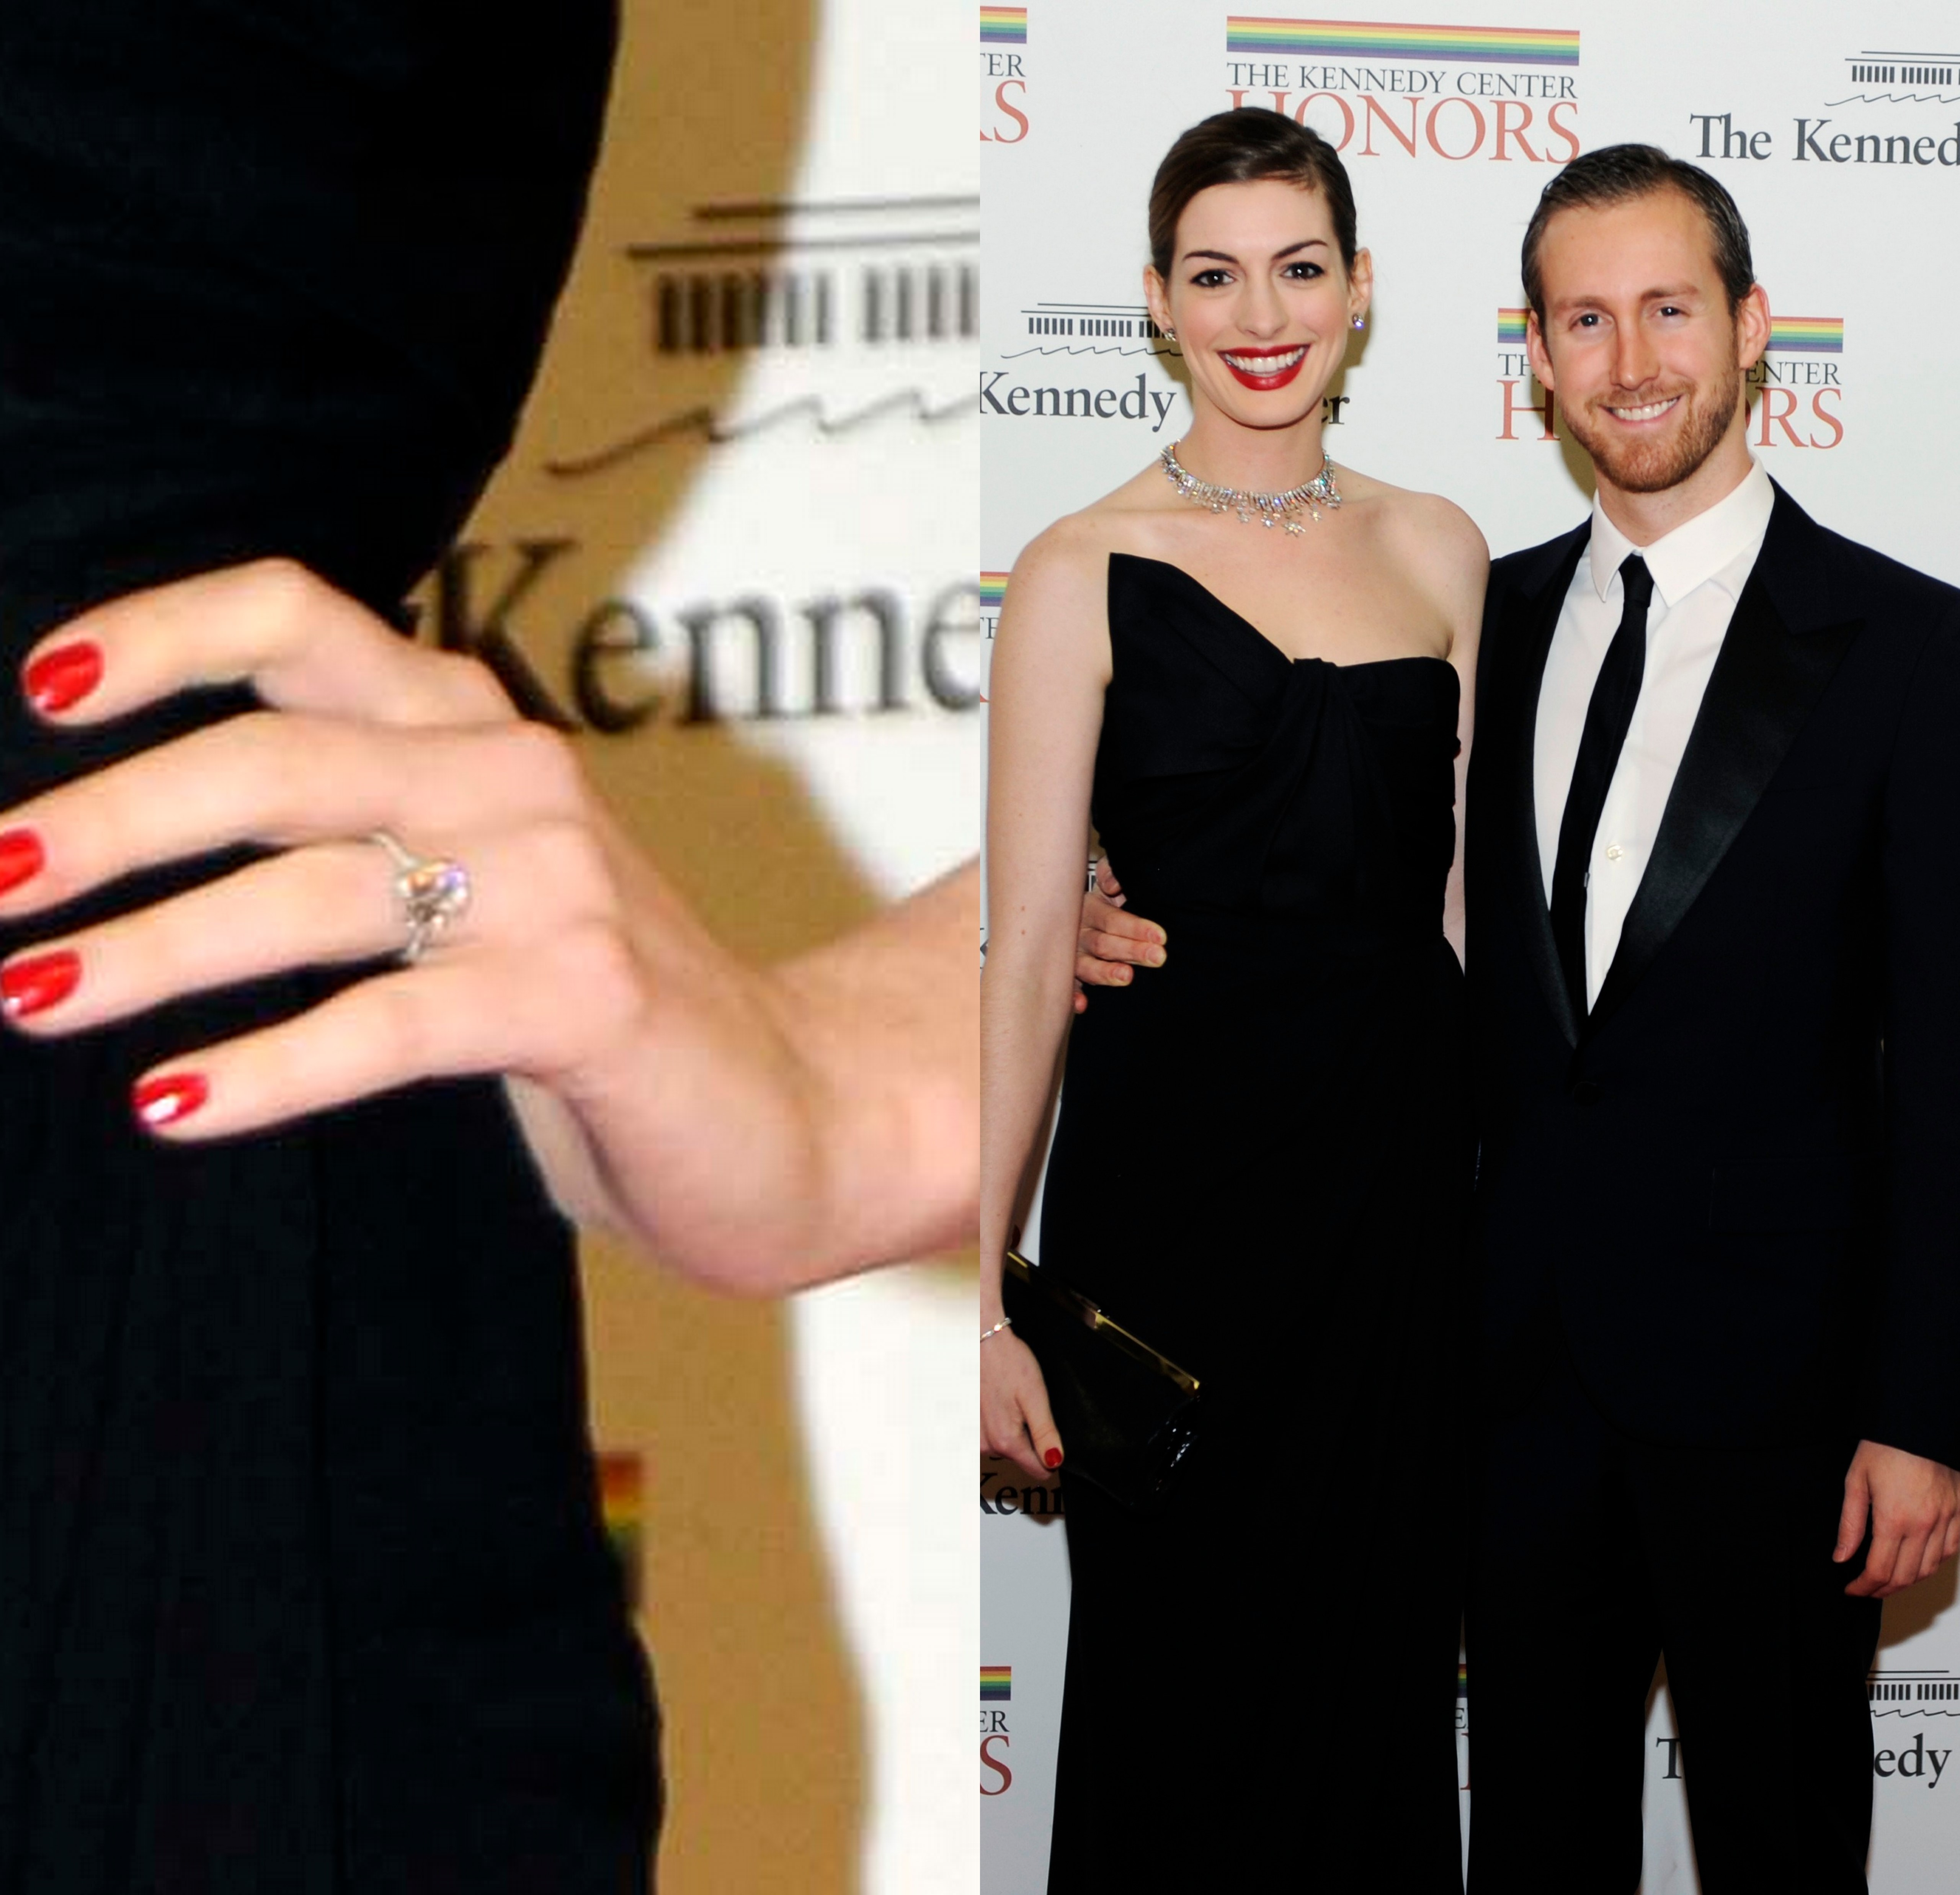 New Details On Anne Hathaway's $150,000 Engagement Ring